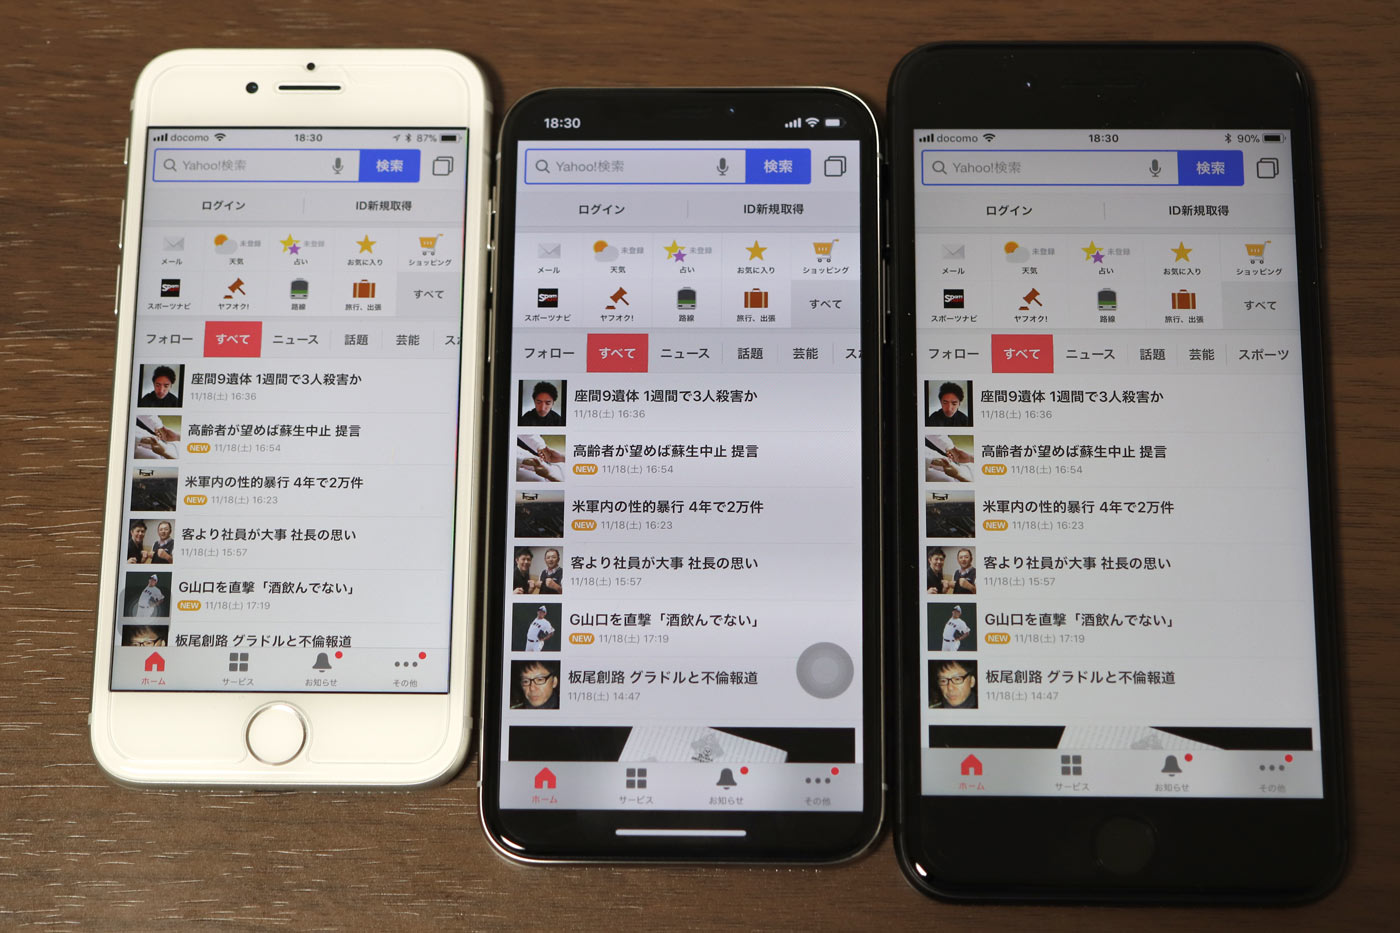 iPhone8 vs iPhoneX vs iPhone8 Plus 画面の大きさ2